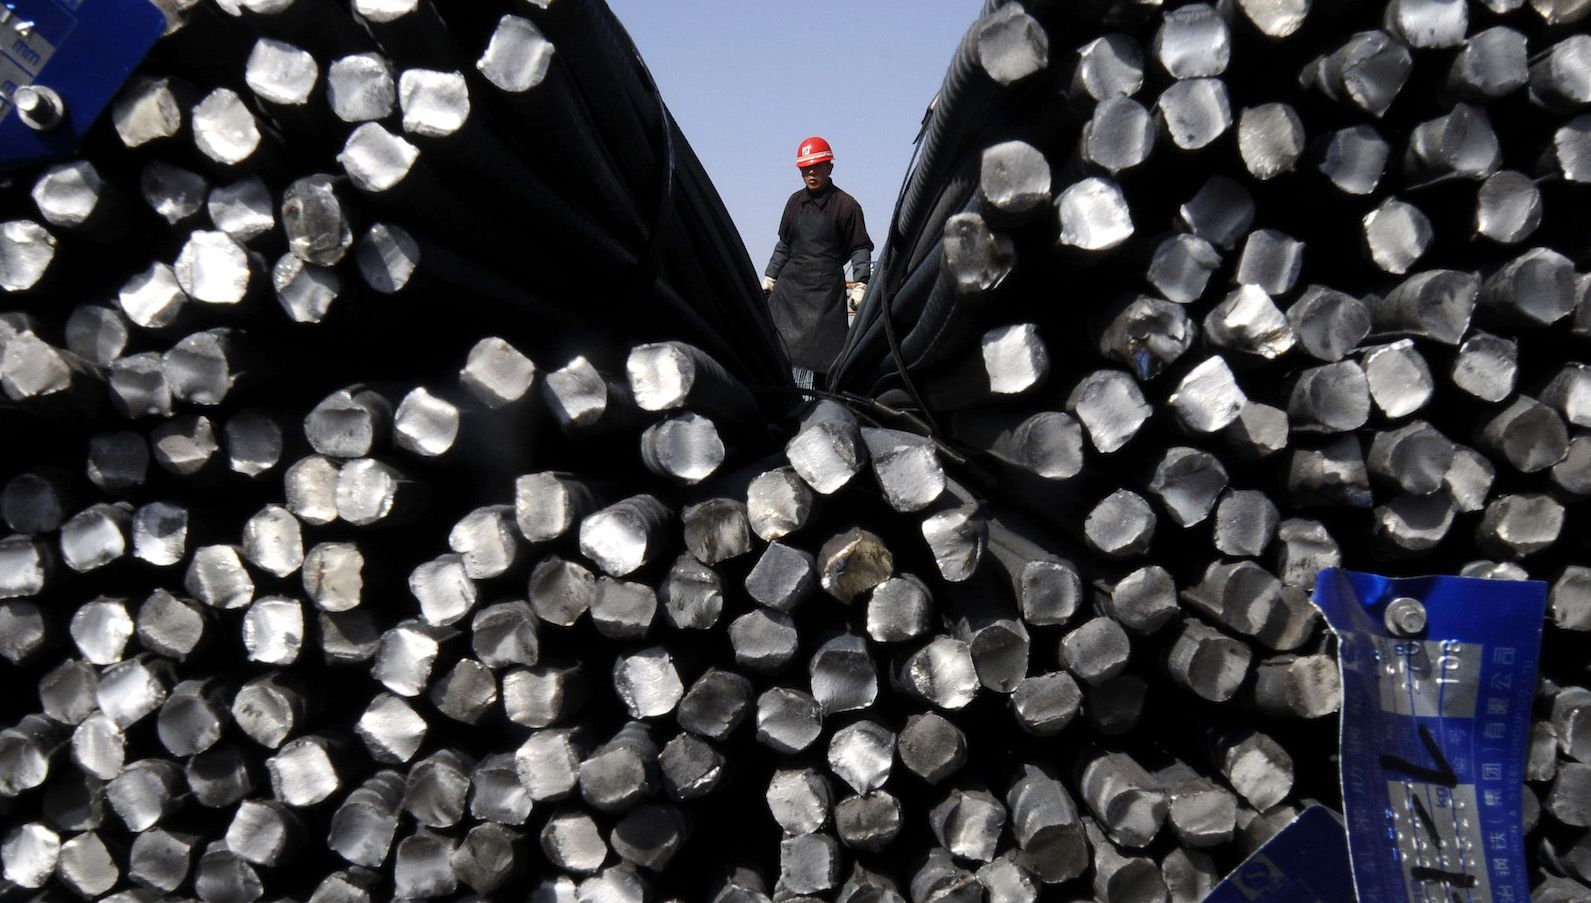 A worker stands behind truncated steel bars at a wholesale market in Changzhi, Shanxi province March 26, 2010. Profit margins at Chinese industrial enterprises have recovered to pre-crisis levels, thanks to a massive domestic stimulus plan and a rebound in demand from abroad, the National Bureau of Statistics said on Friday. REUTERS/Stringer